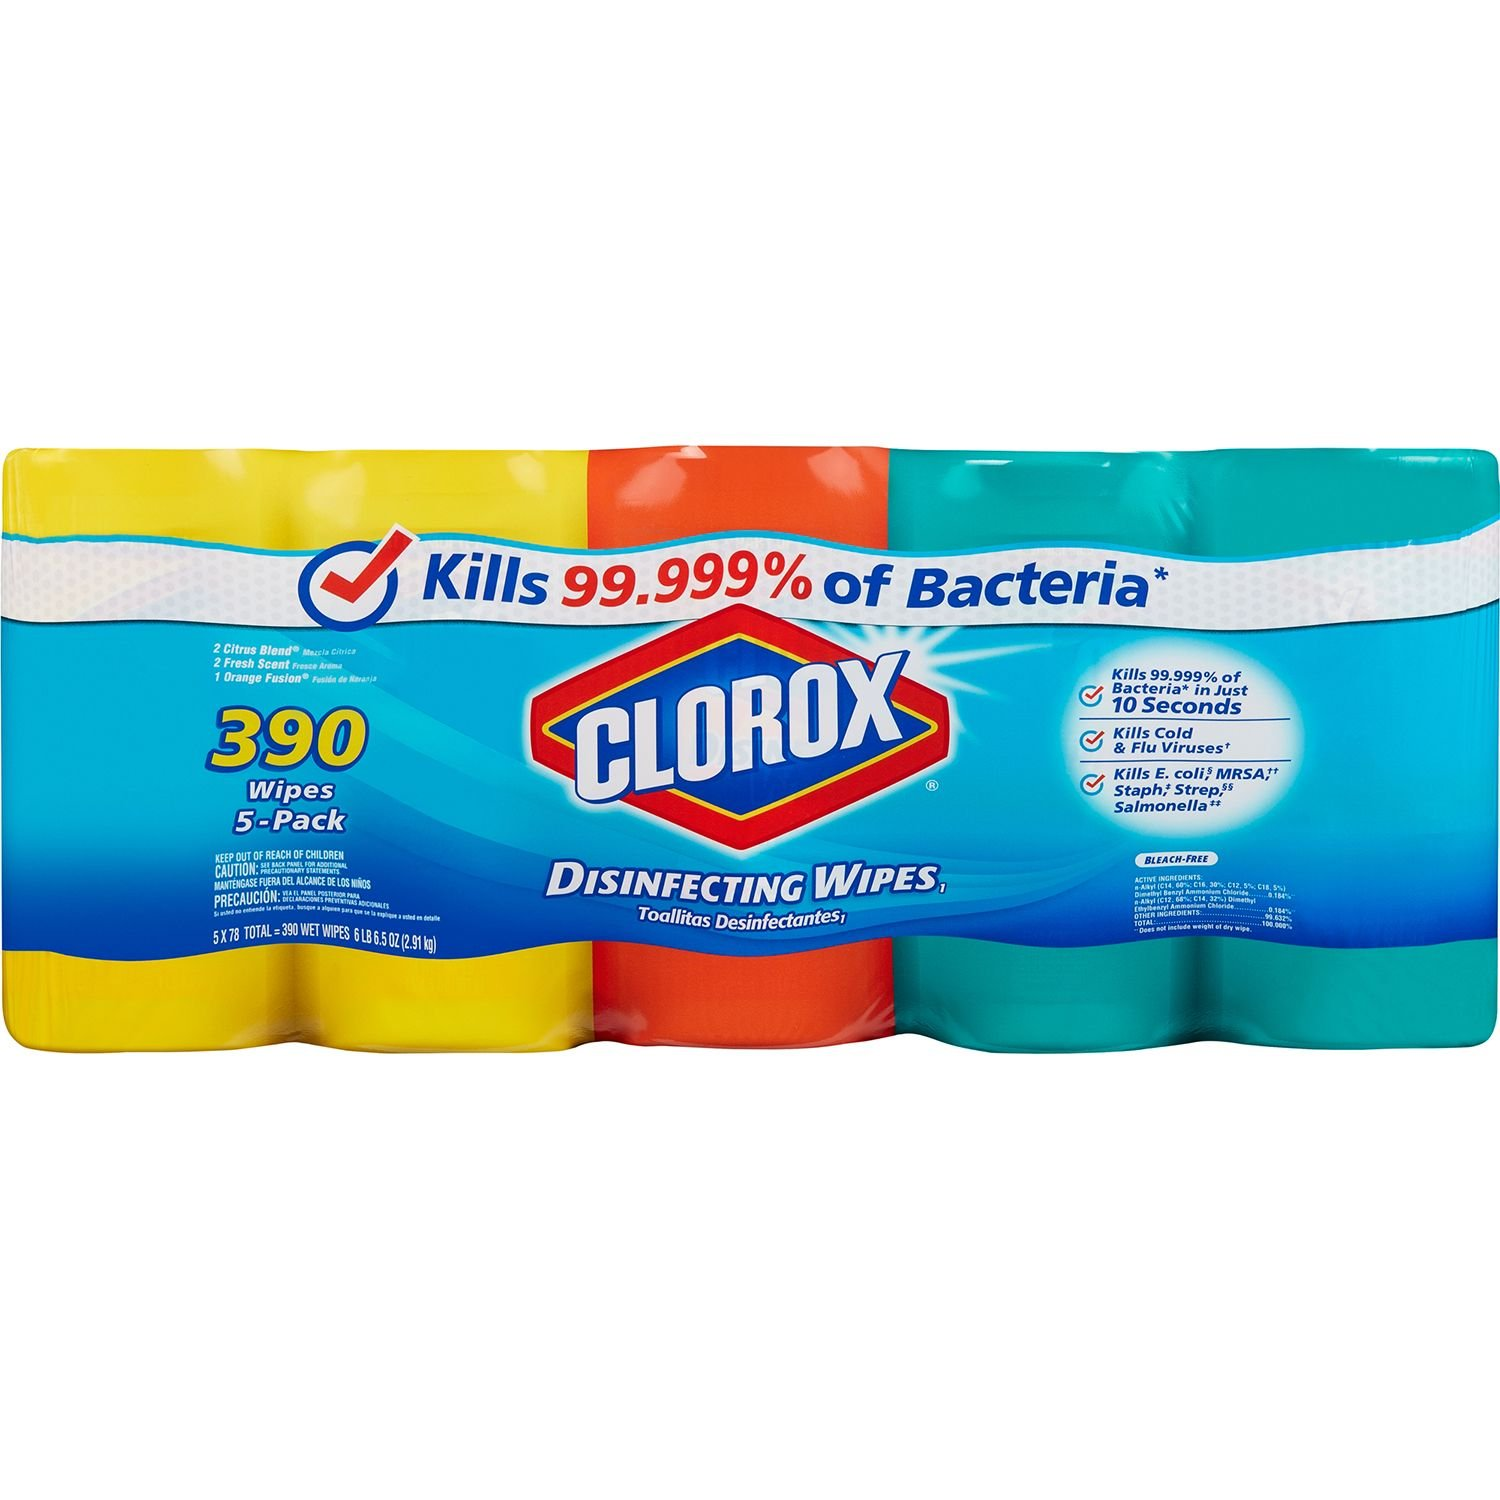 Amazon.com: Clorox Disinfecting Wipes, Variety Pack, 5 pk, 78 Wipes: Kitchen & Dining